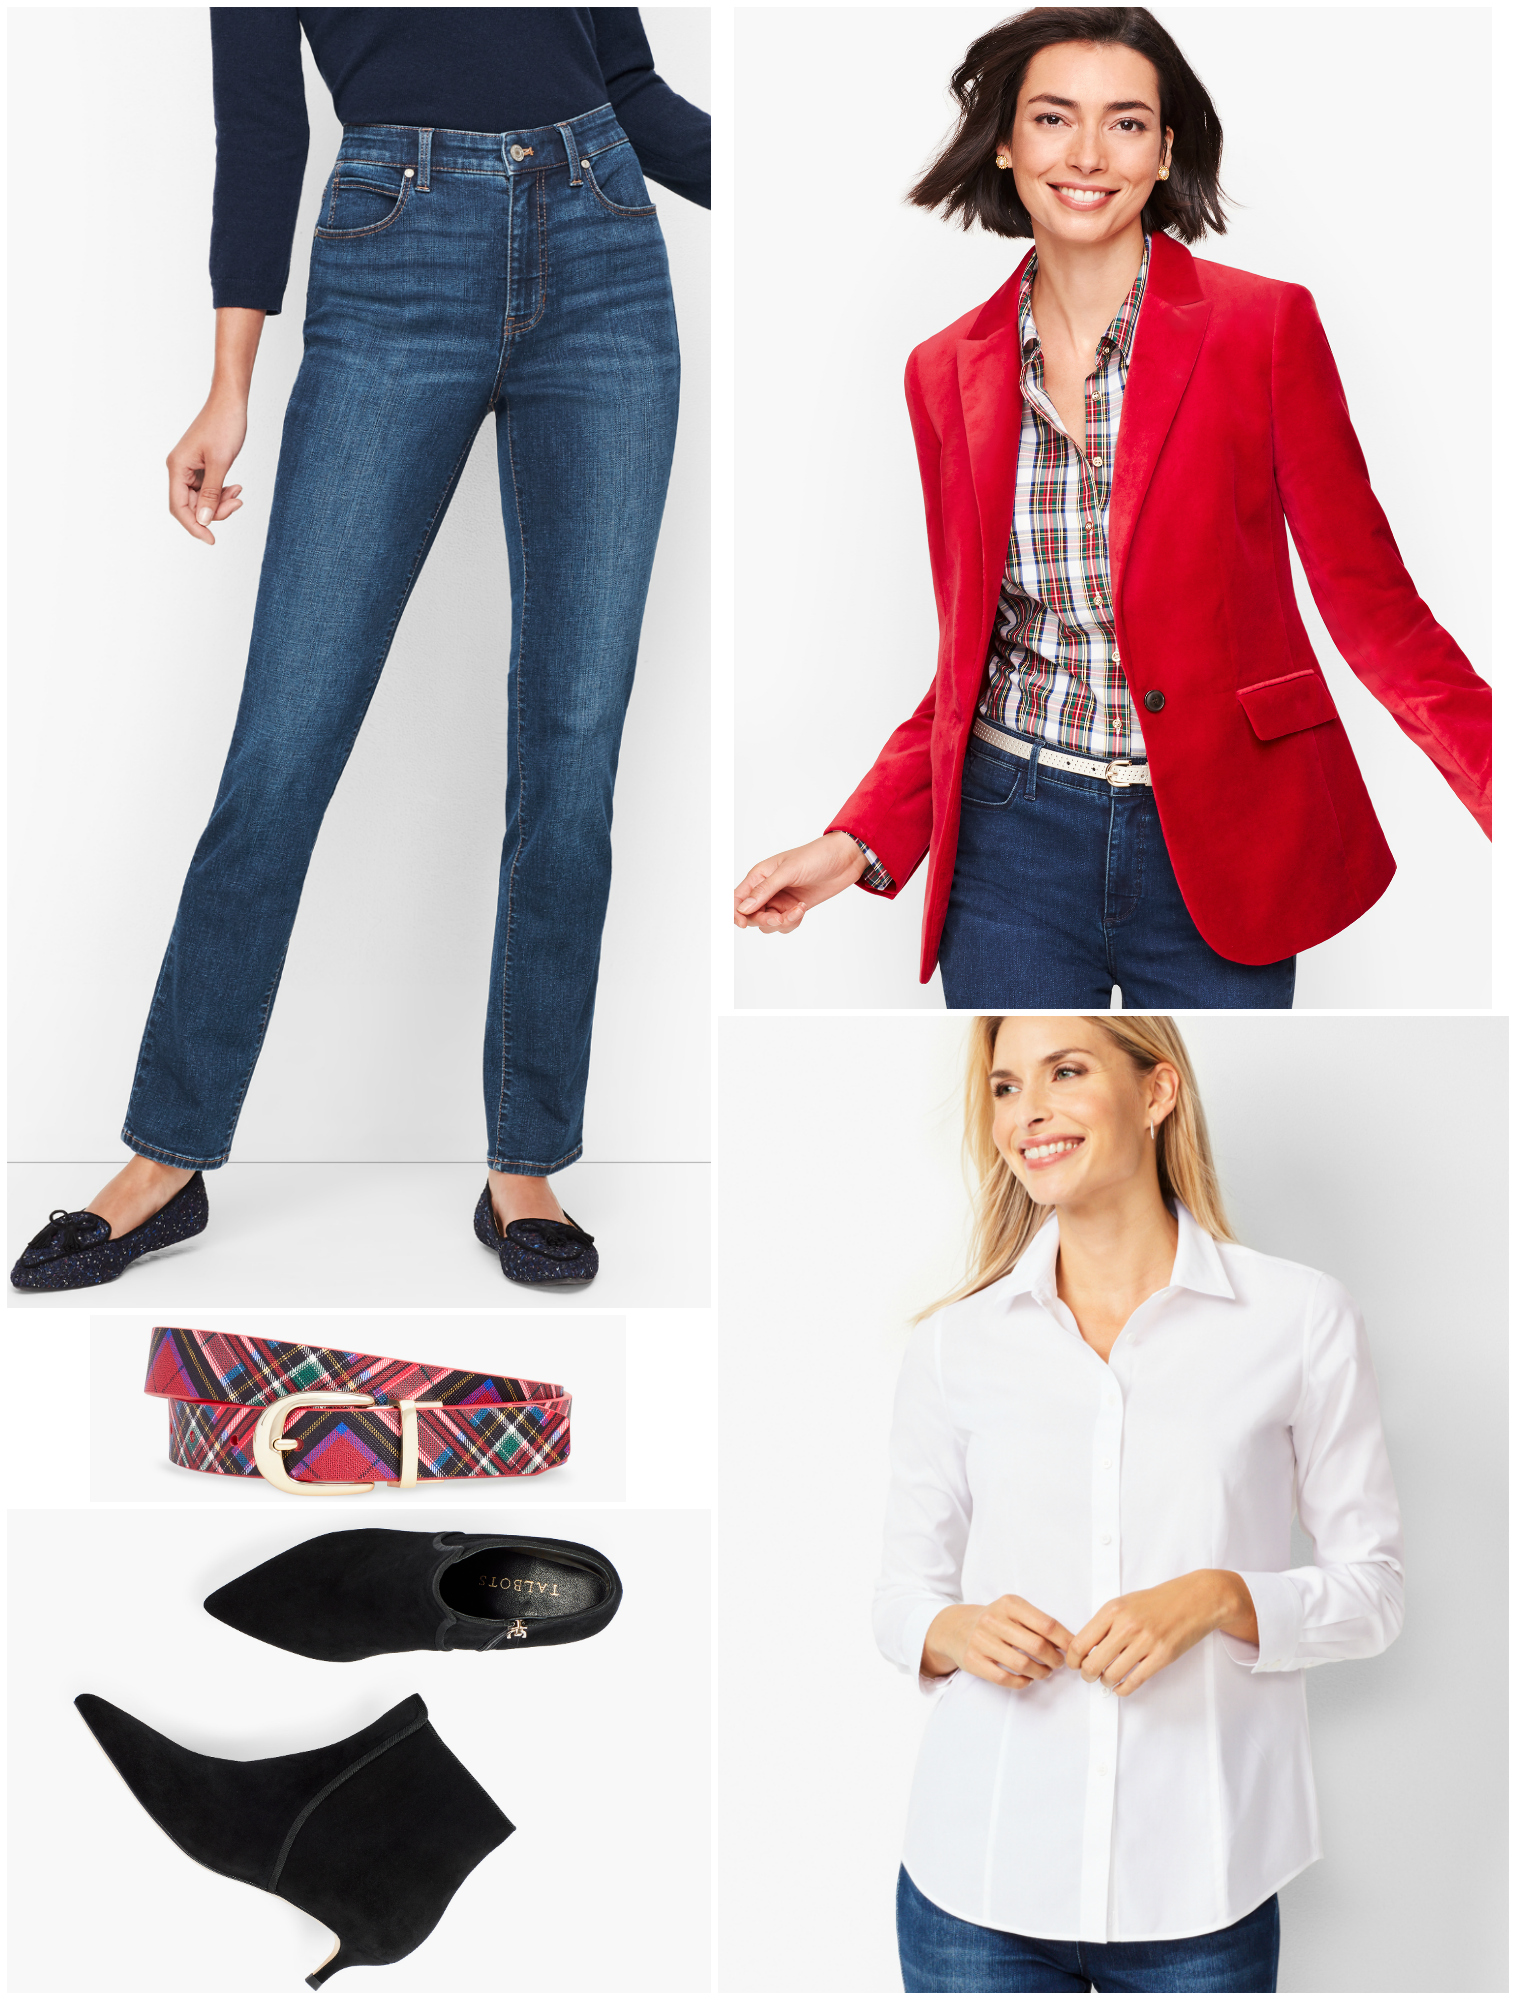 Switch out the tuxedo jacket for a red velvet blazer and use more casual accessories for a festive weekend or Casual Friday look.